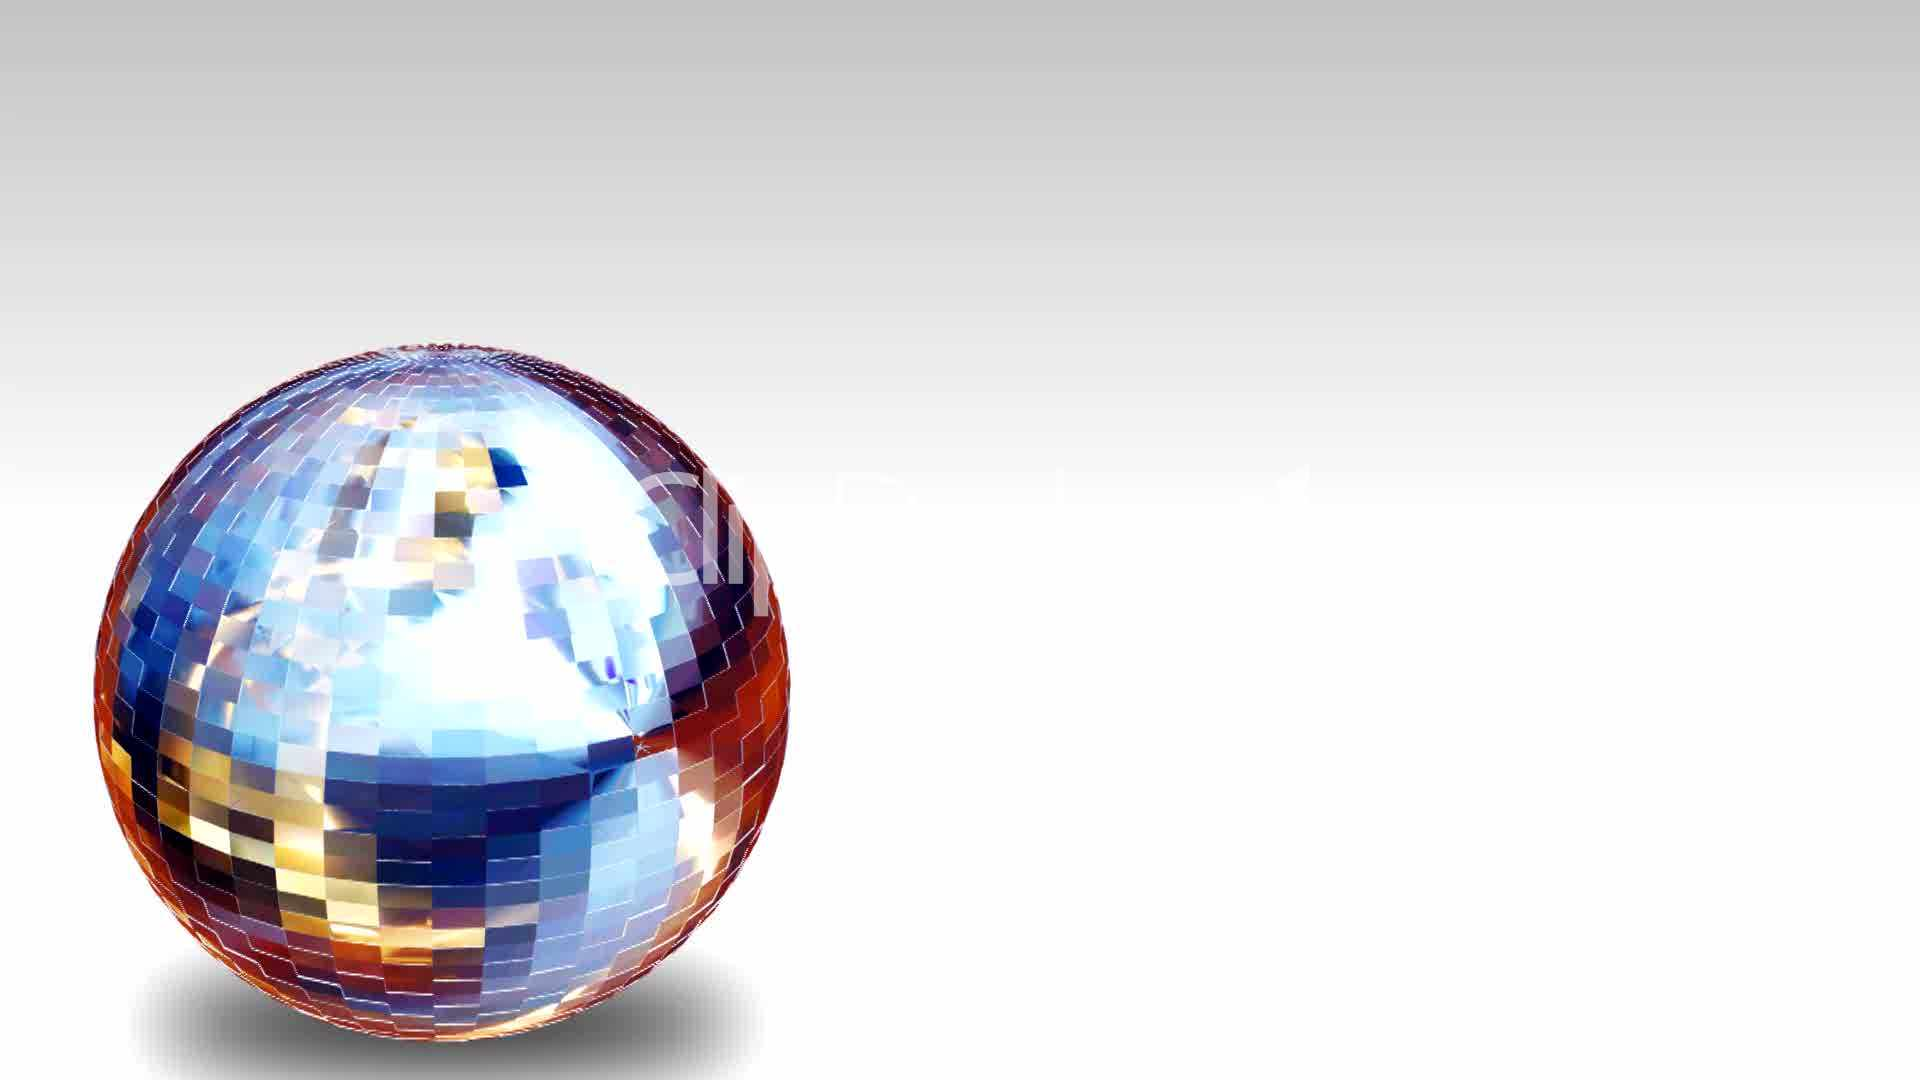 Illustration Decoration 3d Animation Disco Ball: Royalty-free Video And Stock Footage